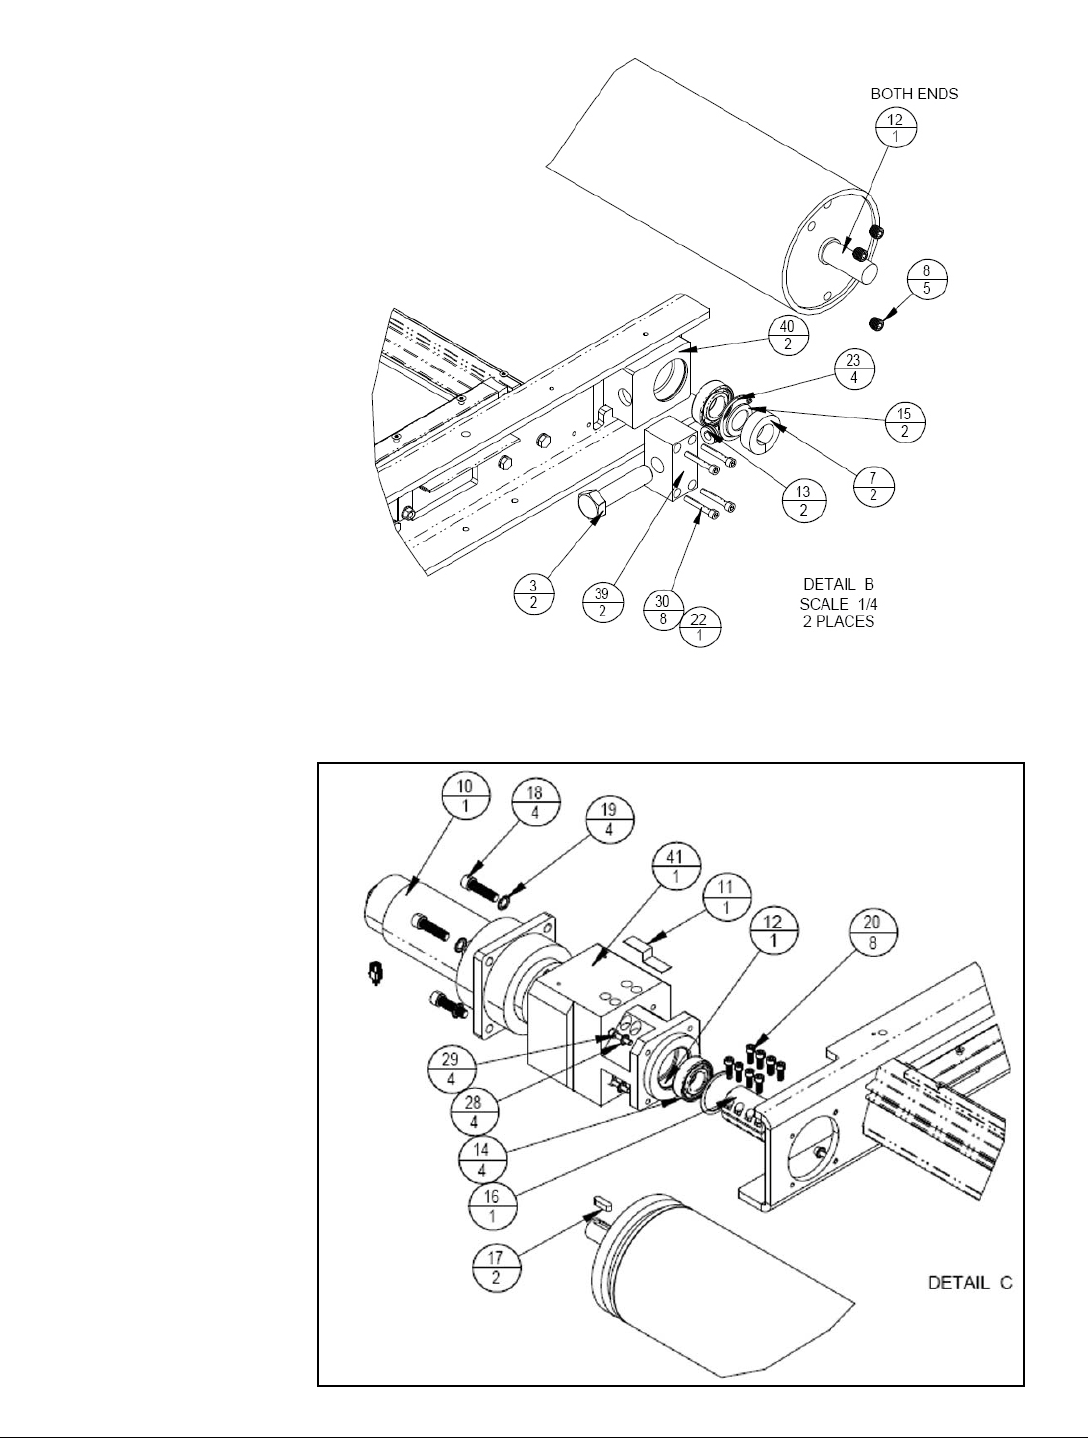 Cq114 90035 rev b hp scitex fb500 fb700 service manual page 55 of 510